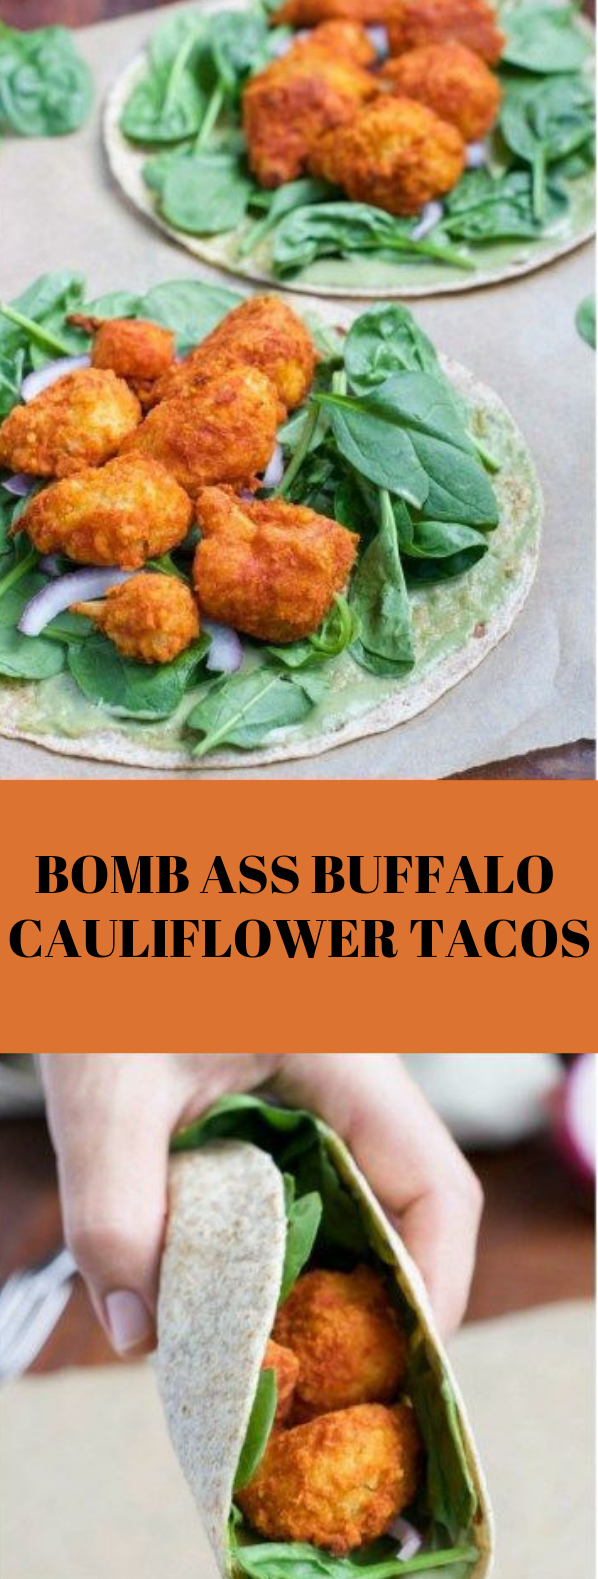 BOMB ASS BUFFALO CAULIFLOWER TACOS #cauliflower #tacos